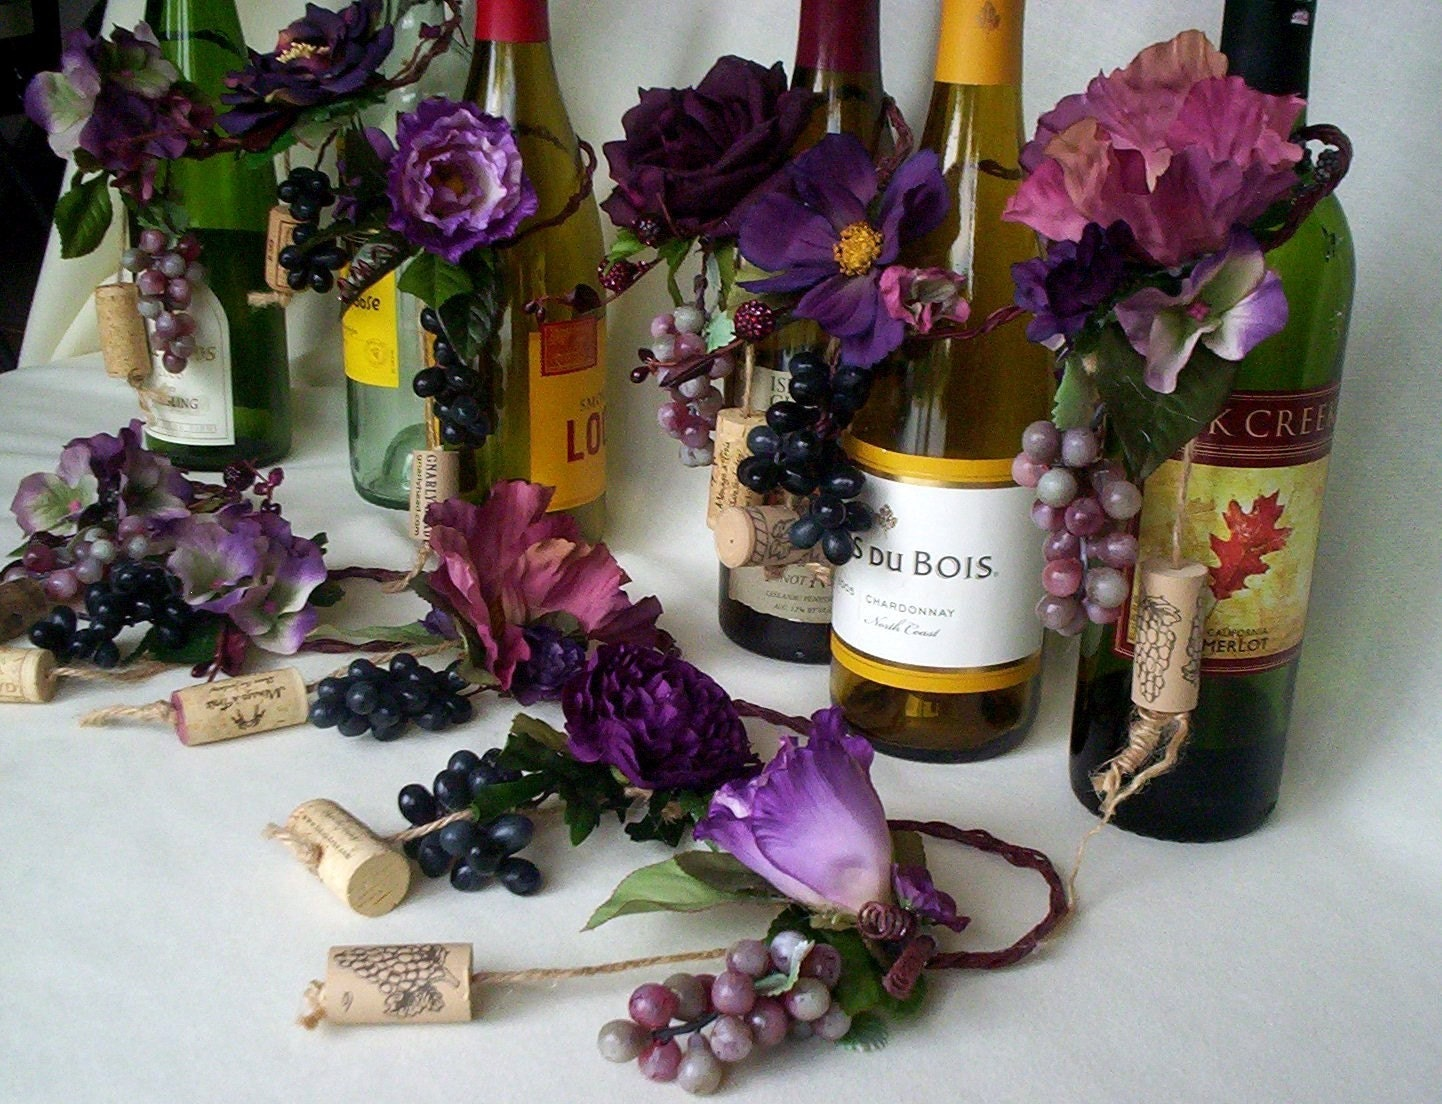 Plum wedding centerpiece wine bottle toppers grapes custom Wine bottle wedding centerpieces